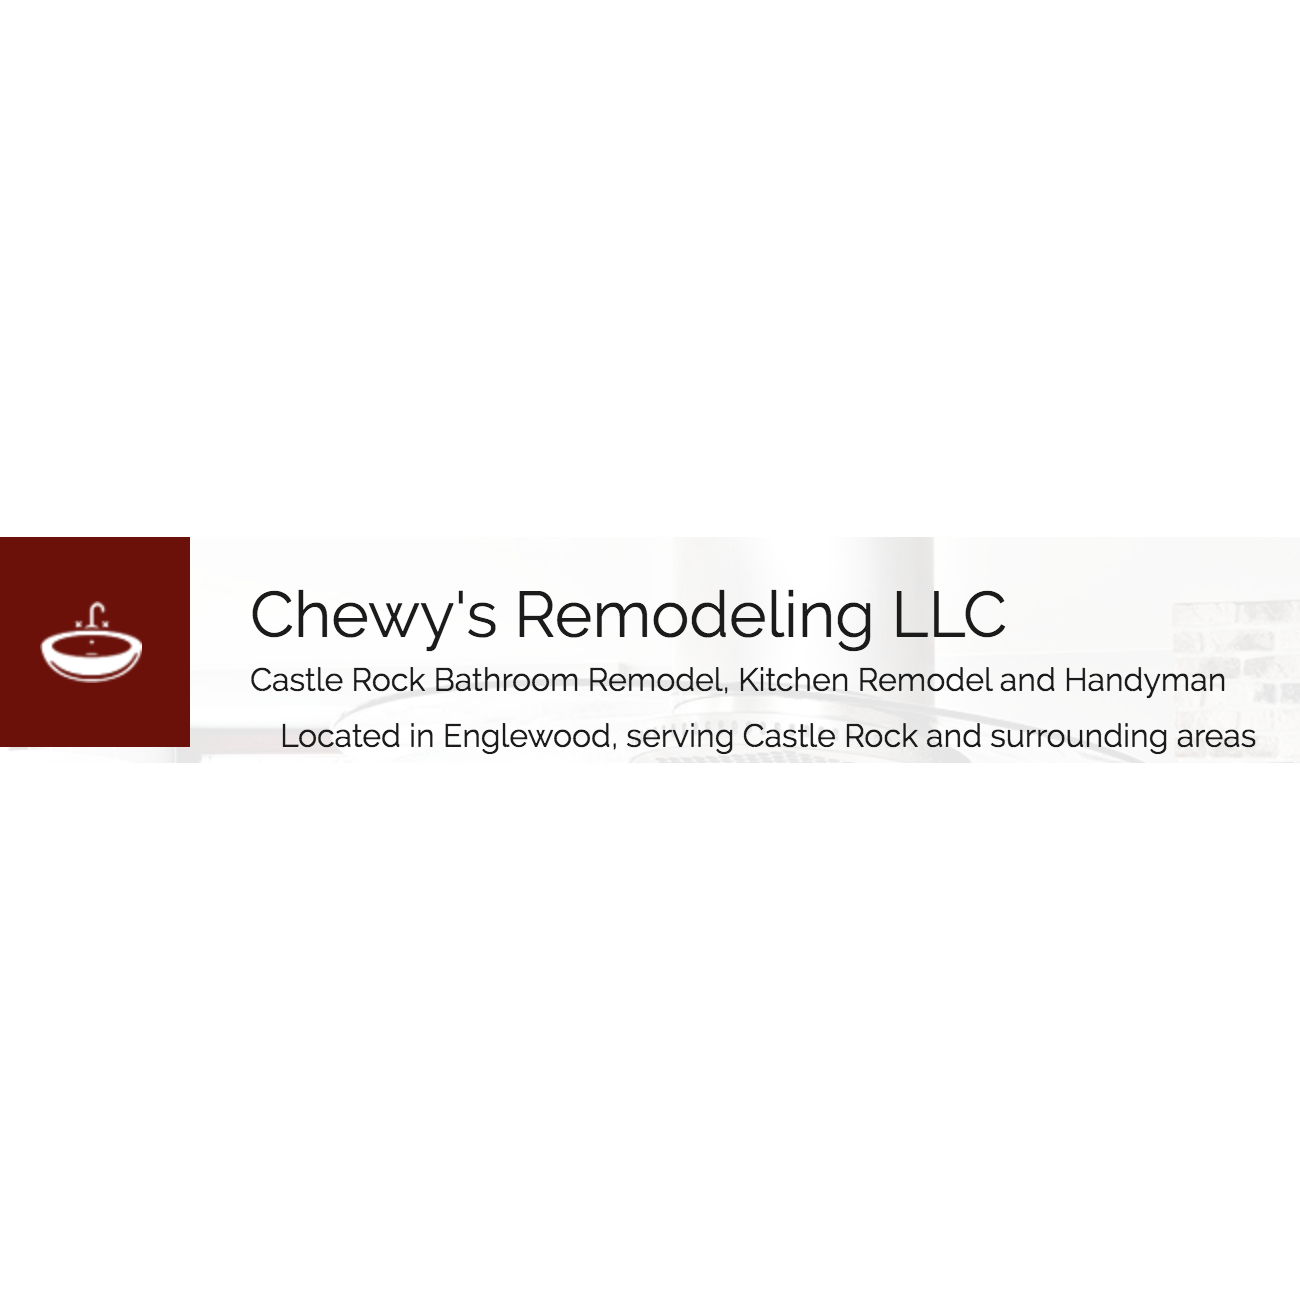 Chewy's Remodeling, LLC.